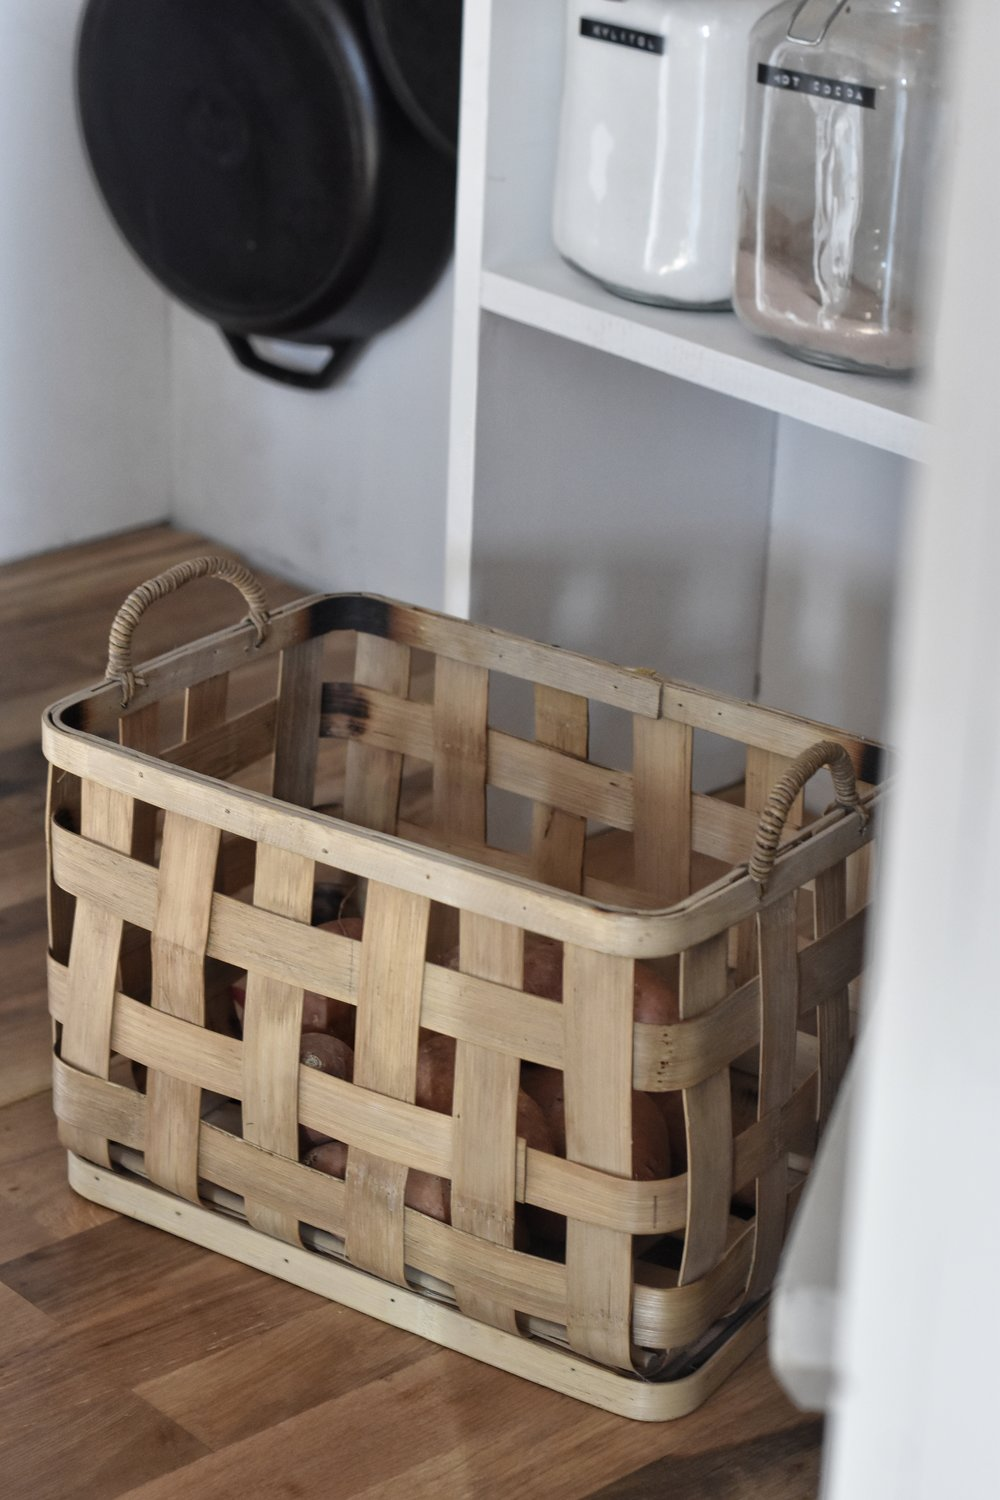 Flat Creek Farmhouse - Pantry Organization